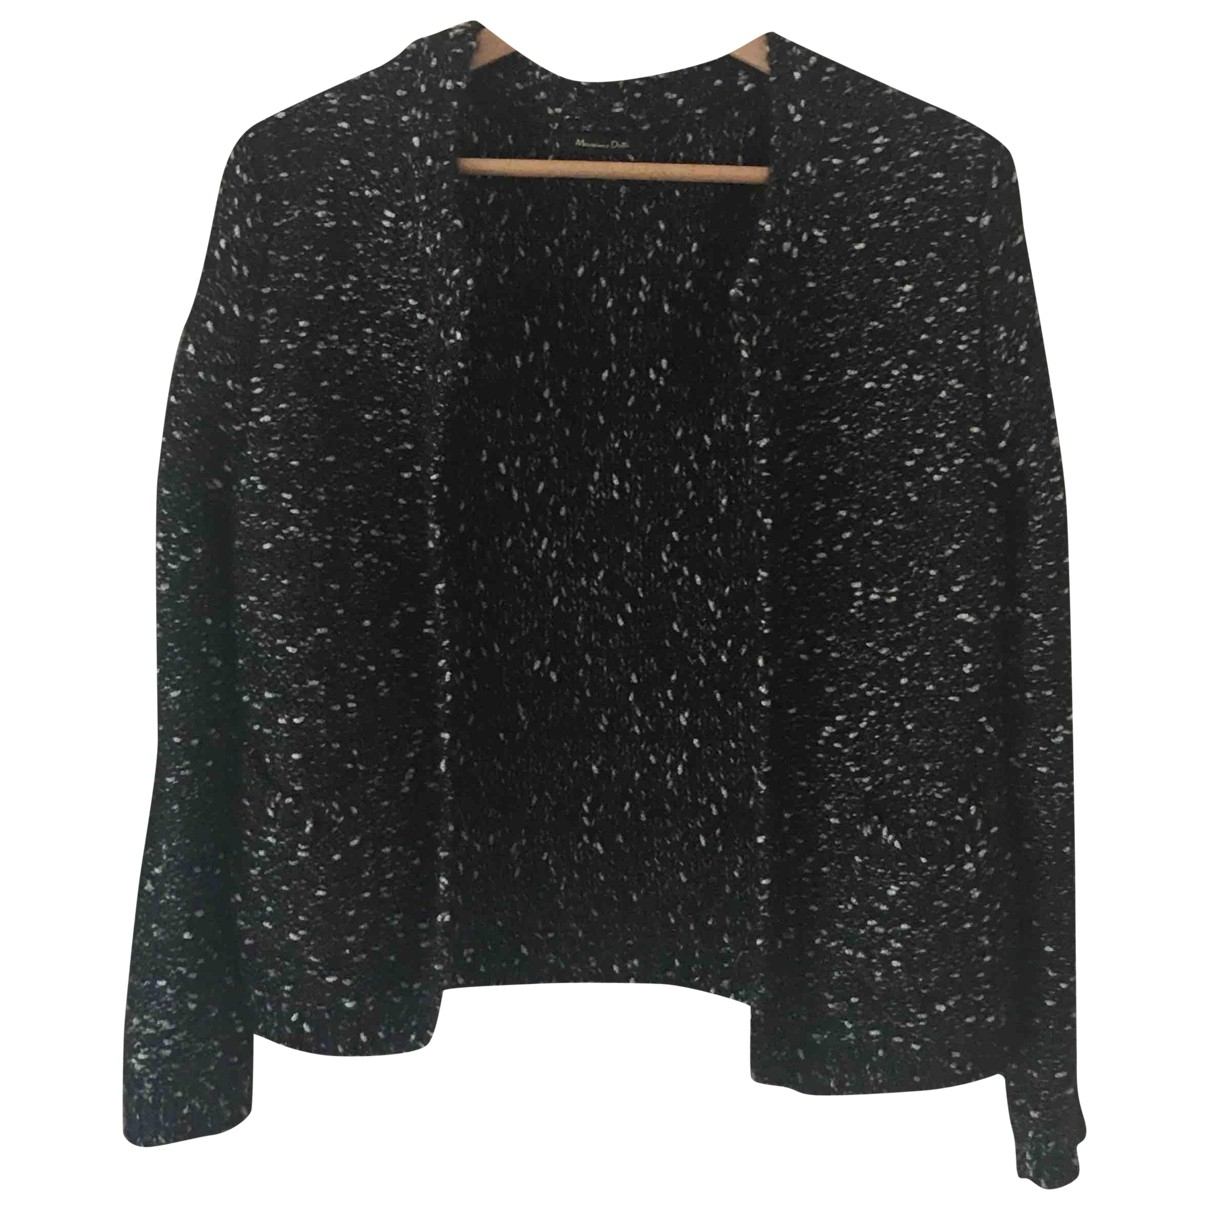 Massimo Dutti \N Black Wool Knitwear for Women L International